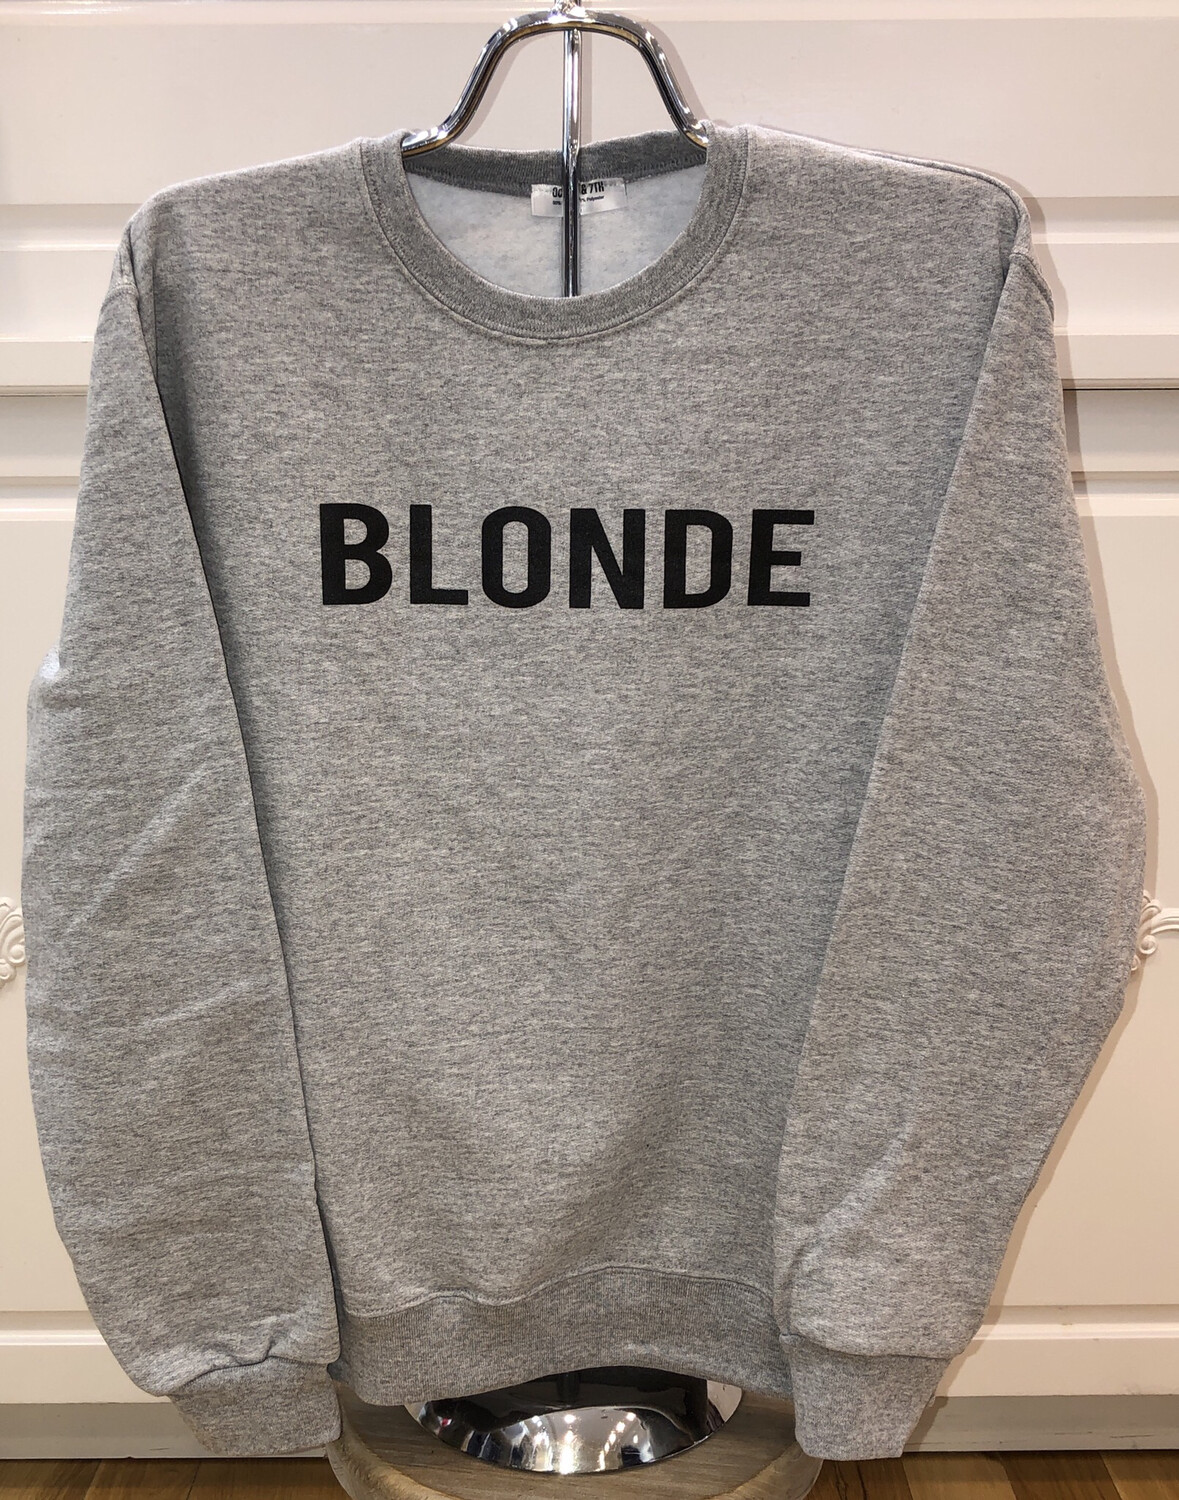 Blonde on Gray Sweatshirt